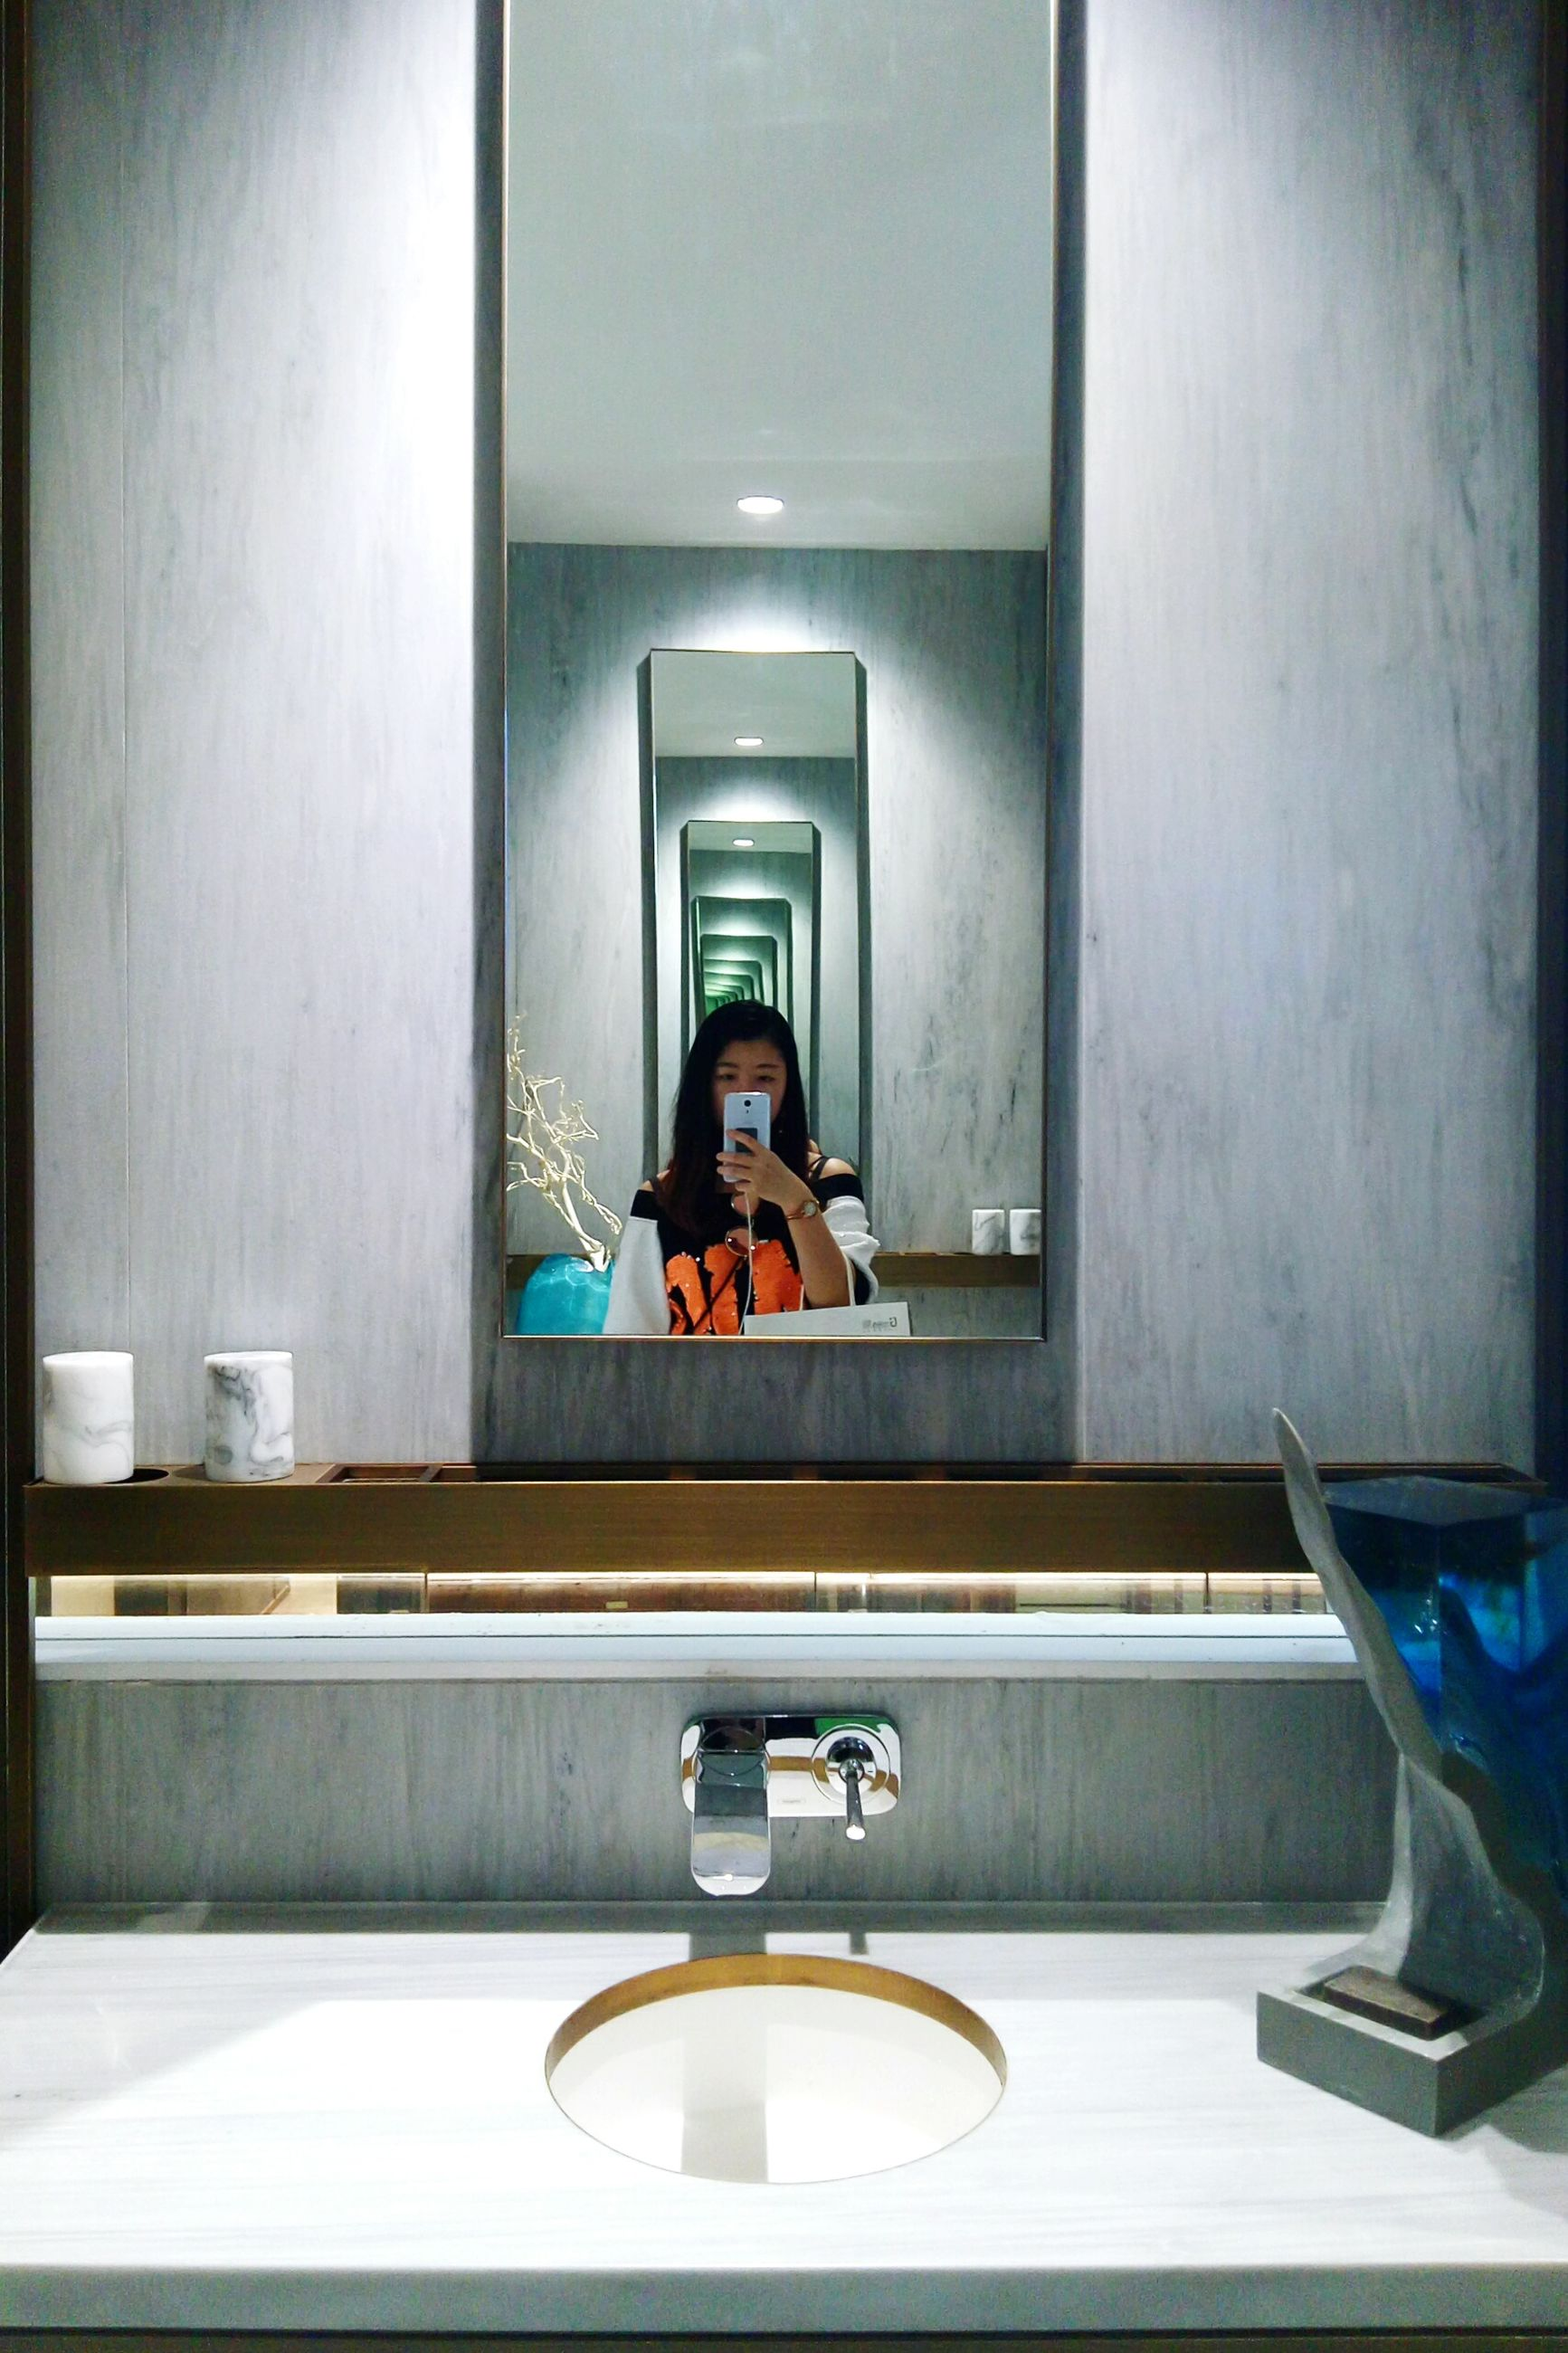 mirror, indoors, real people, bathroom, one person, illuminated, day, bathroom sink, people